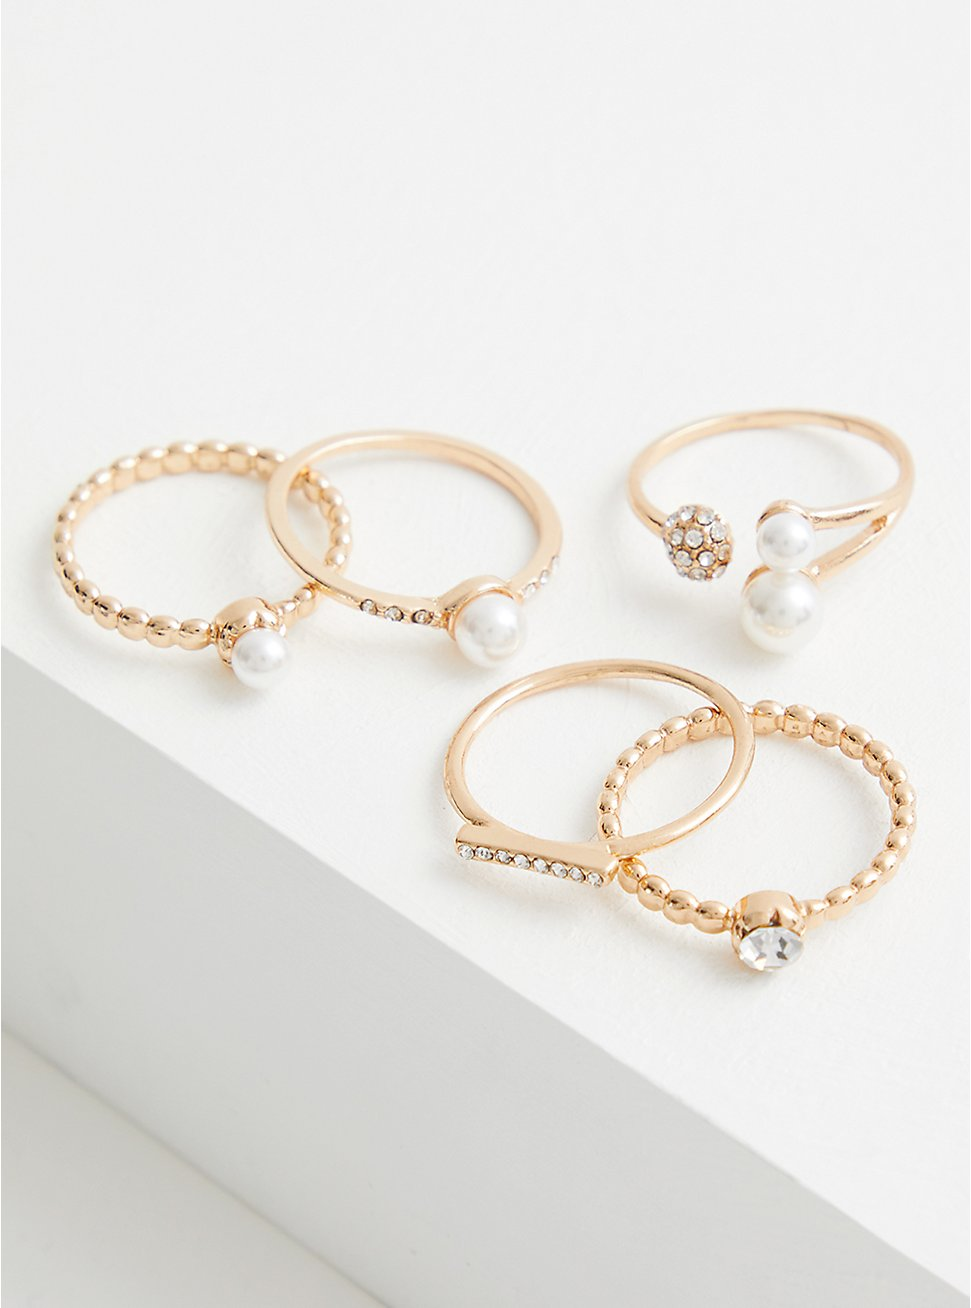 Gold Tone Faux Pearl Ring Set - Set of 5, GOLD, hi-res